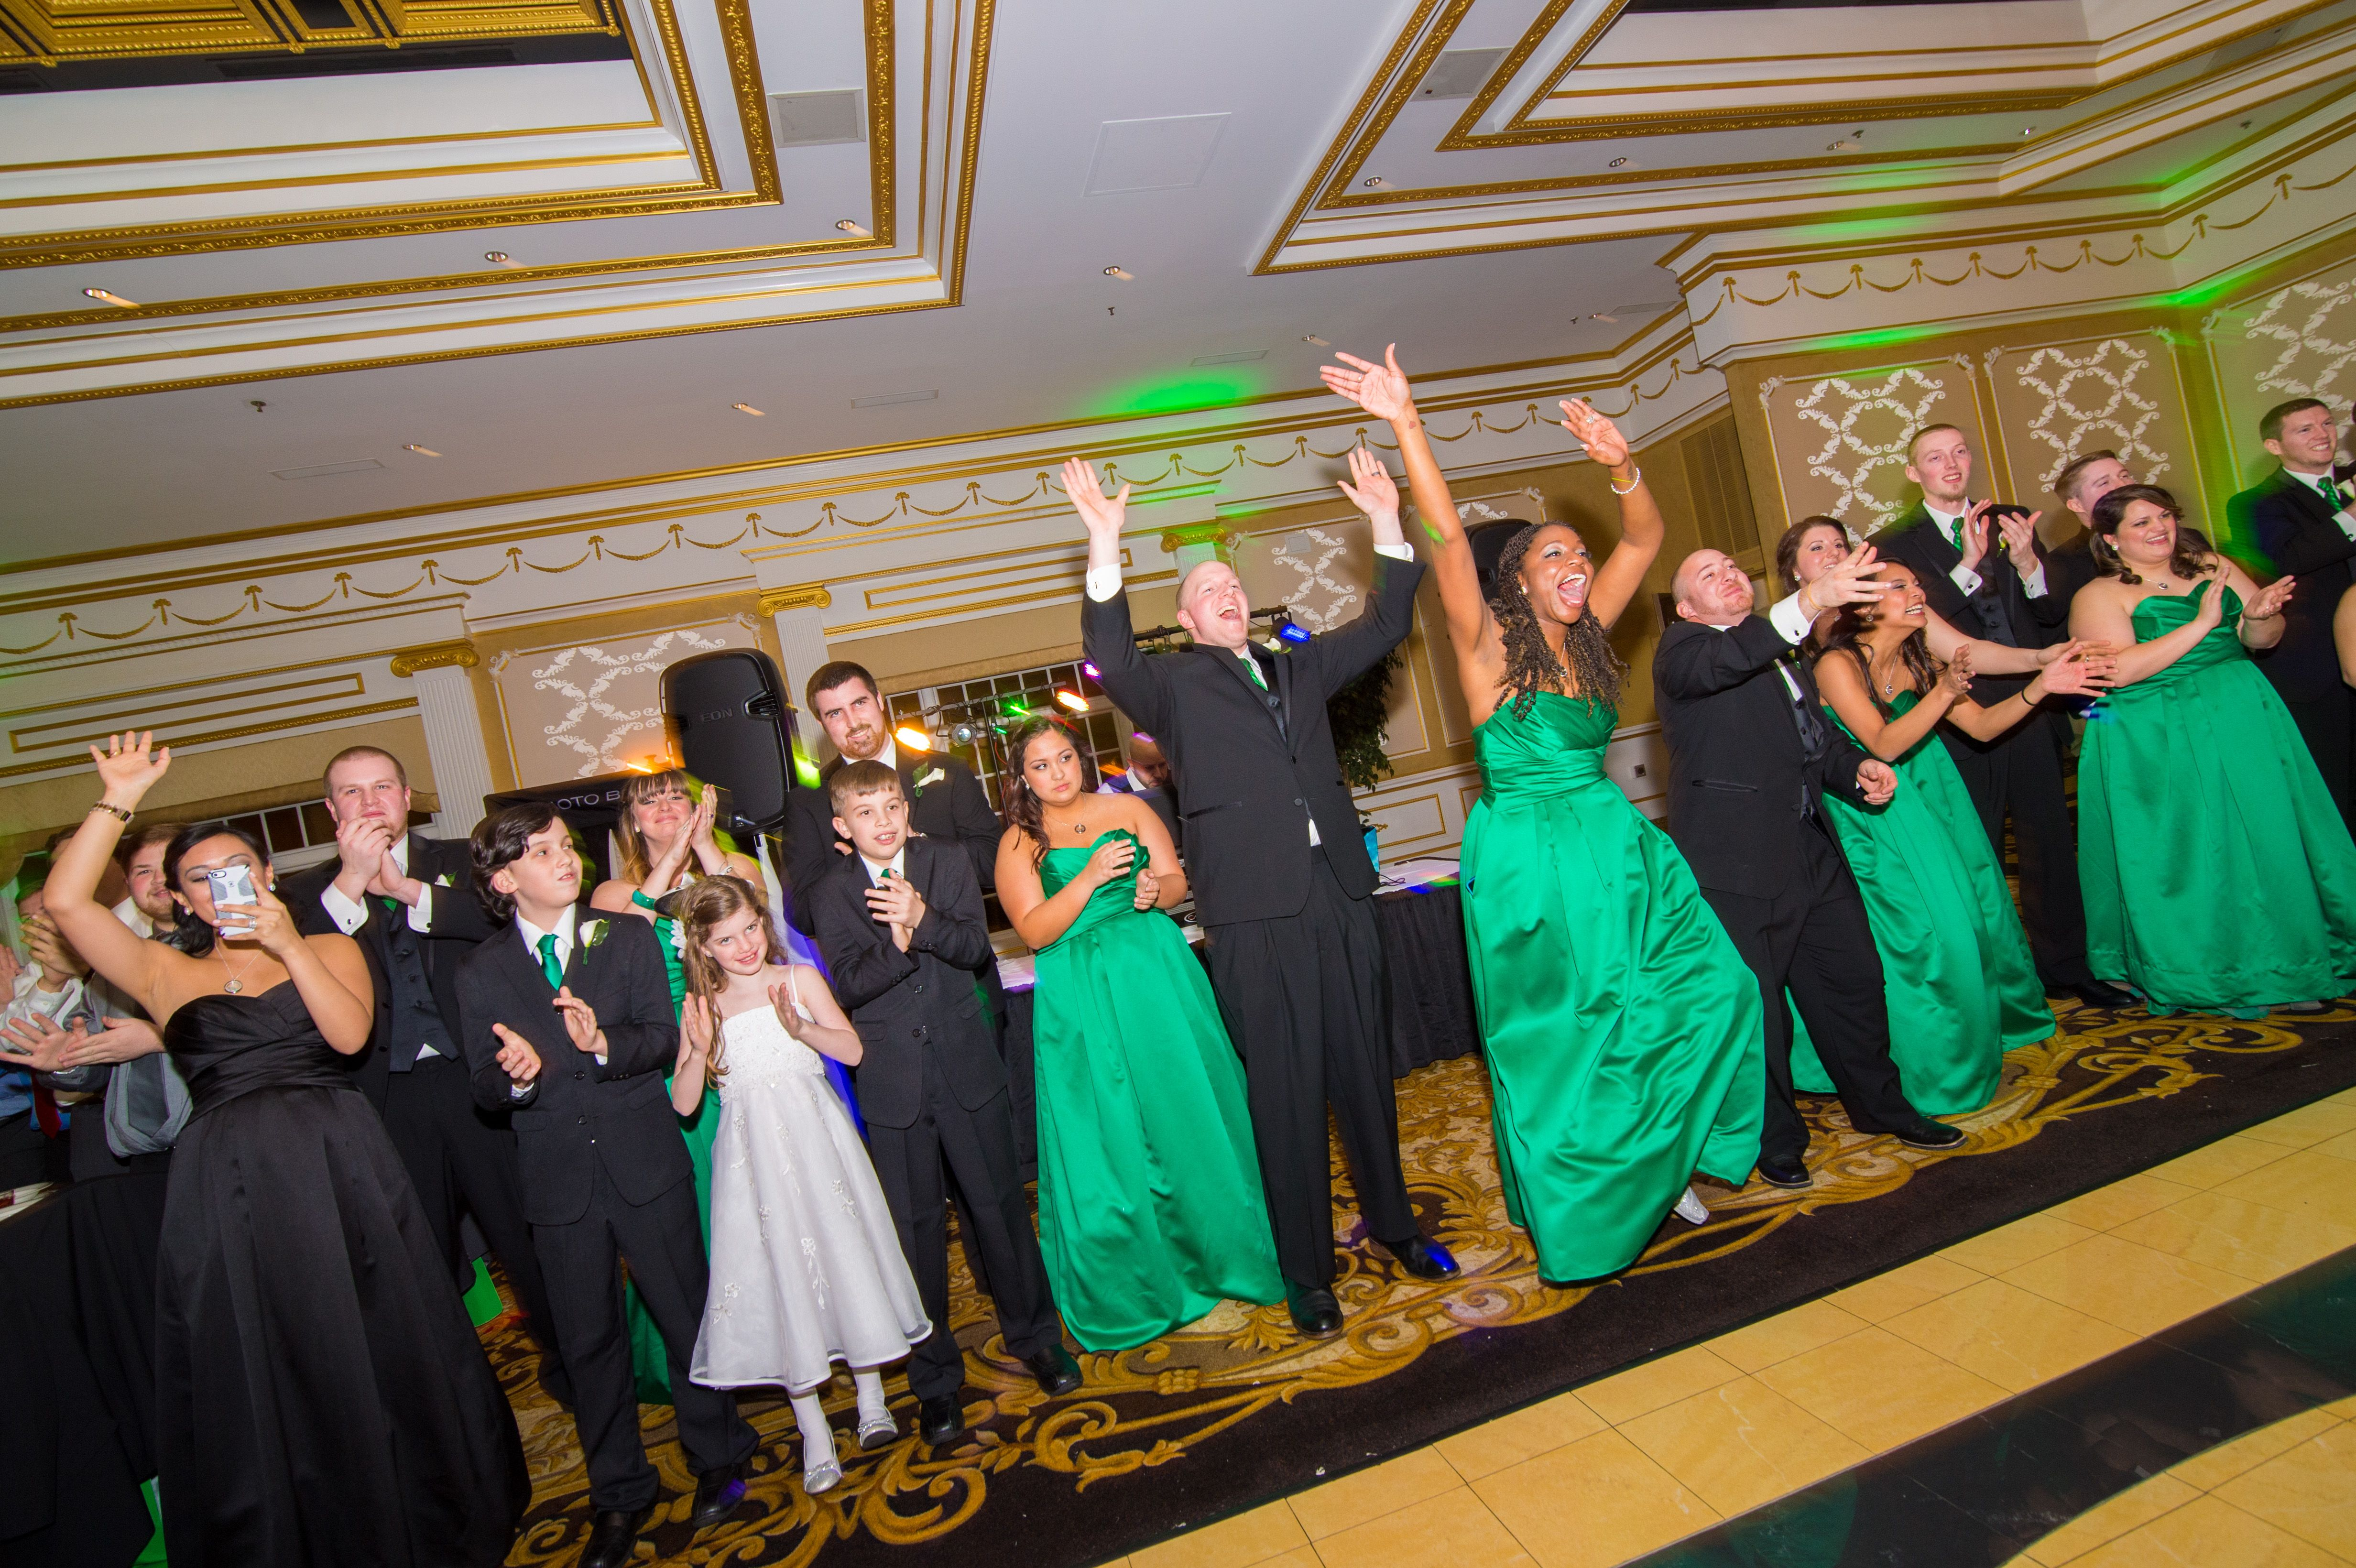 Bridal party on the dance floor rock the aisle bridal